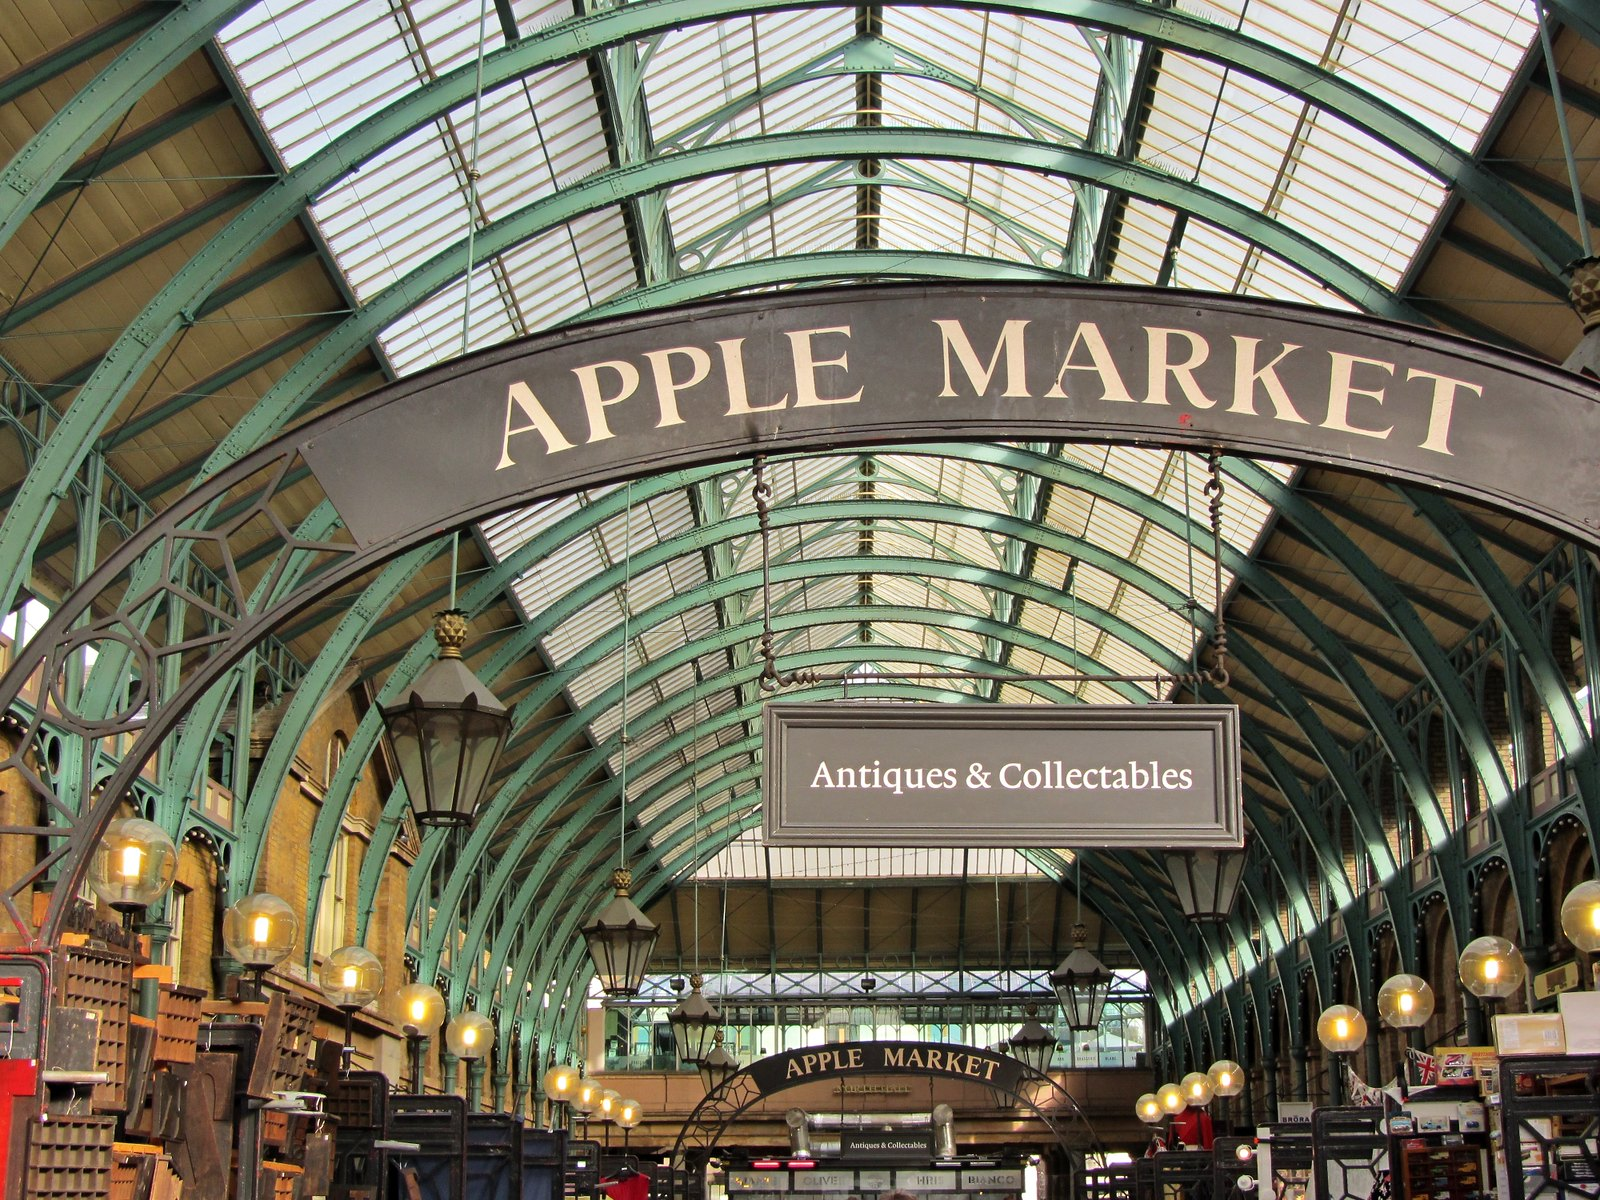 The Apple Market, Covent Garden. Credit Roman Hobler, flickr